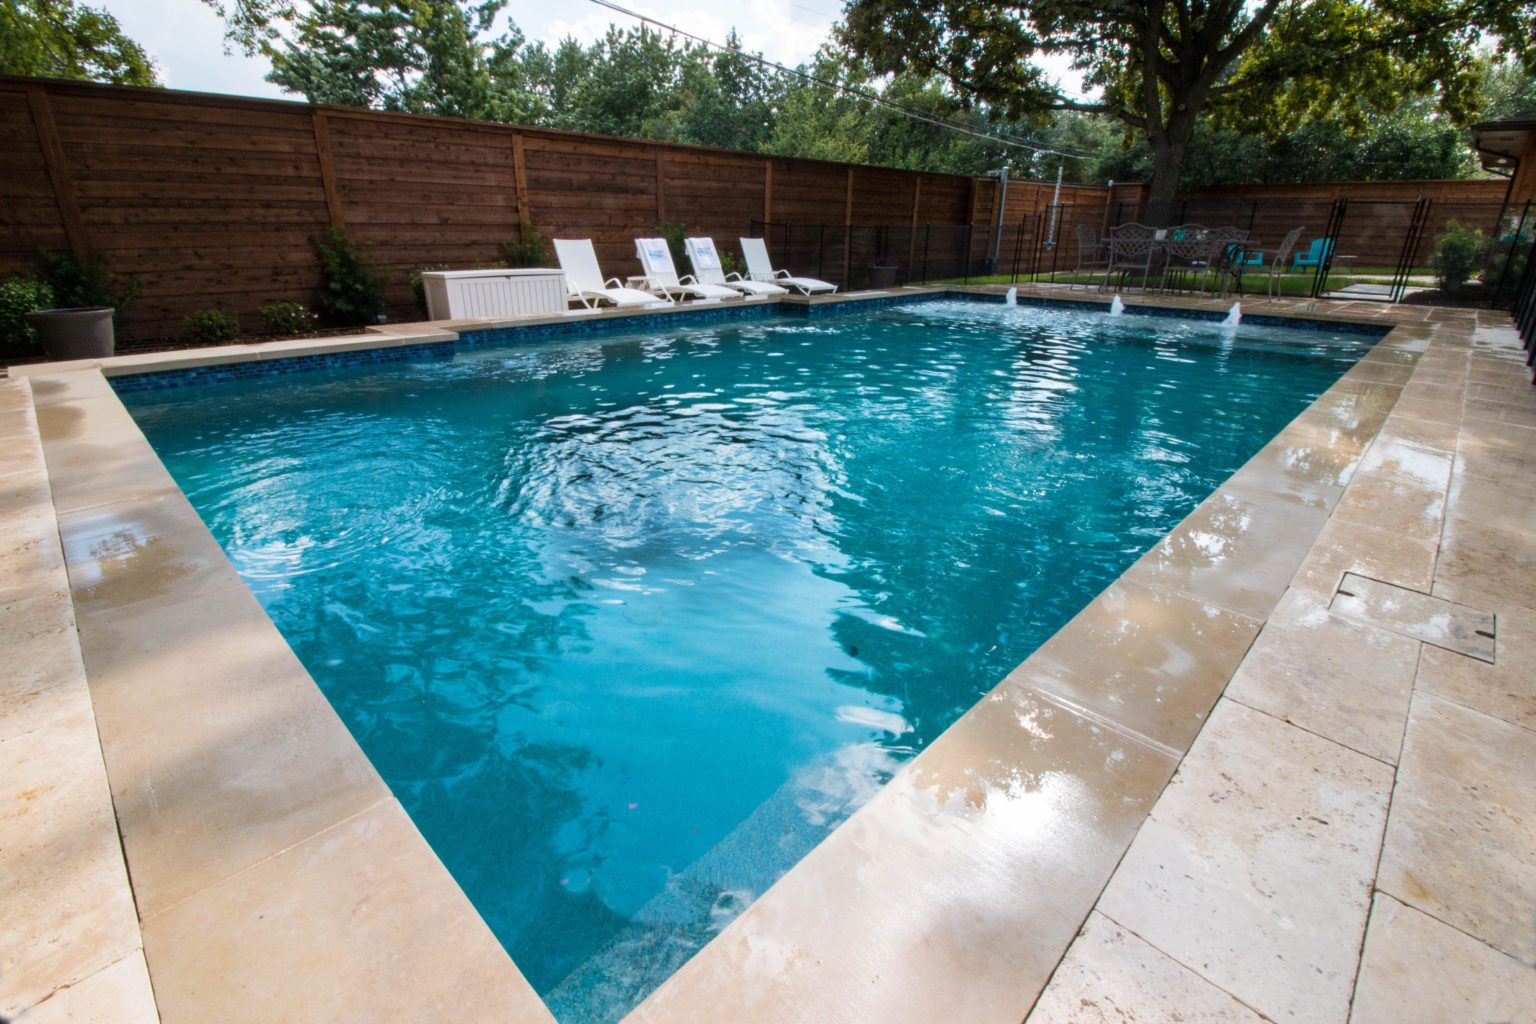 overview of the swimming pool with the ivory travertine pavers by qdi splash pad and bubblers